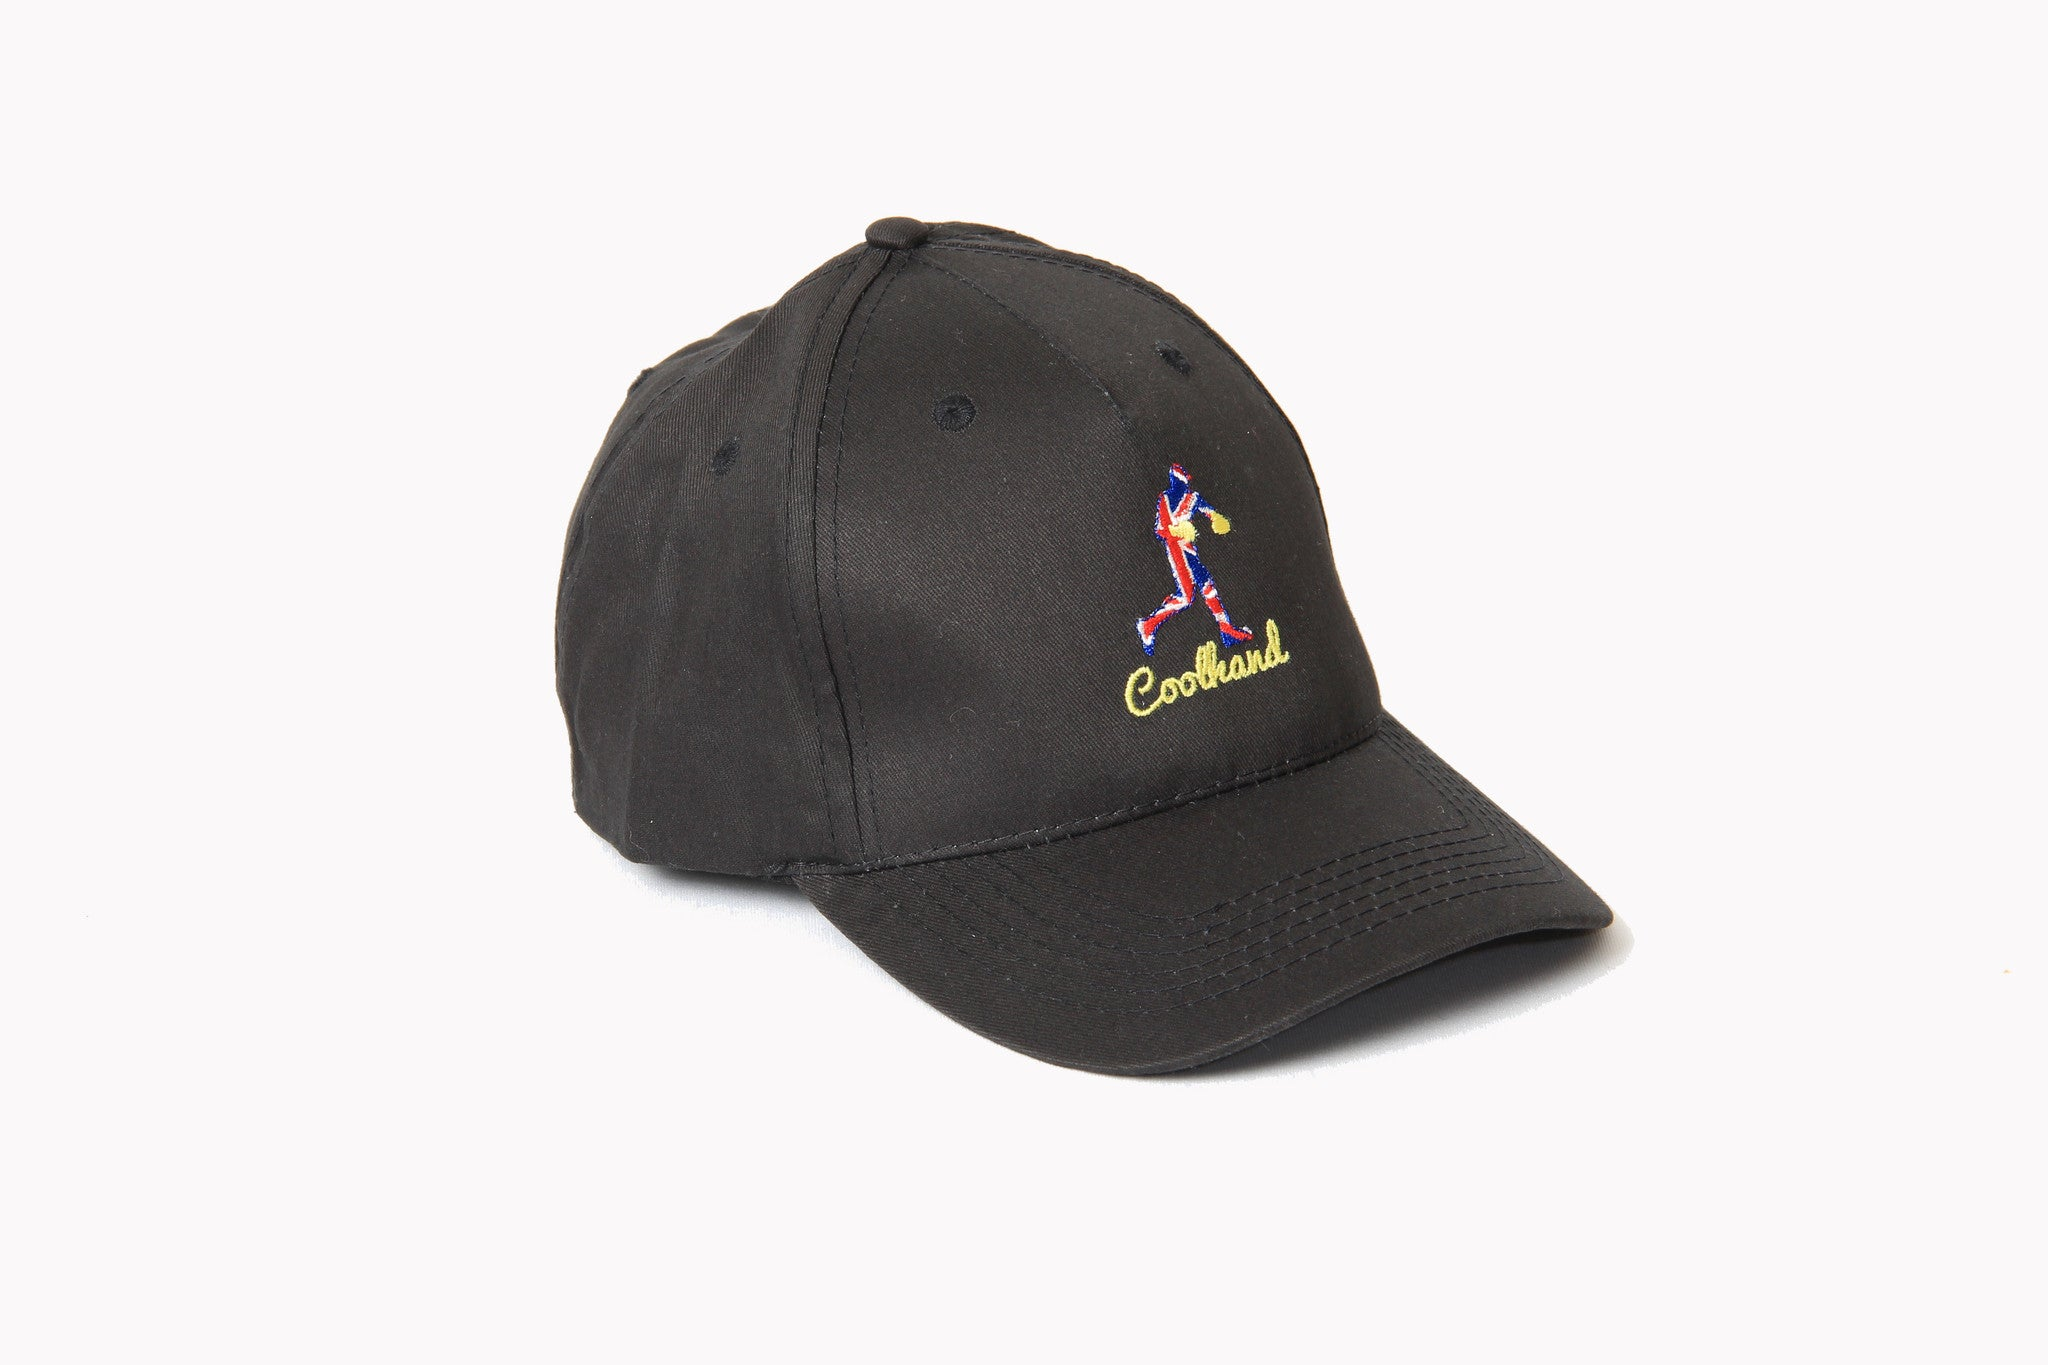 Black Baseball Cap Coolhand